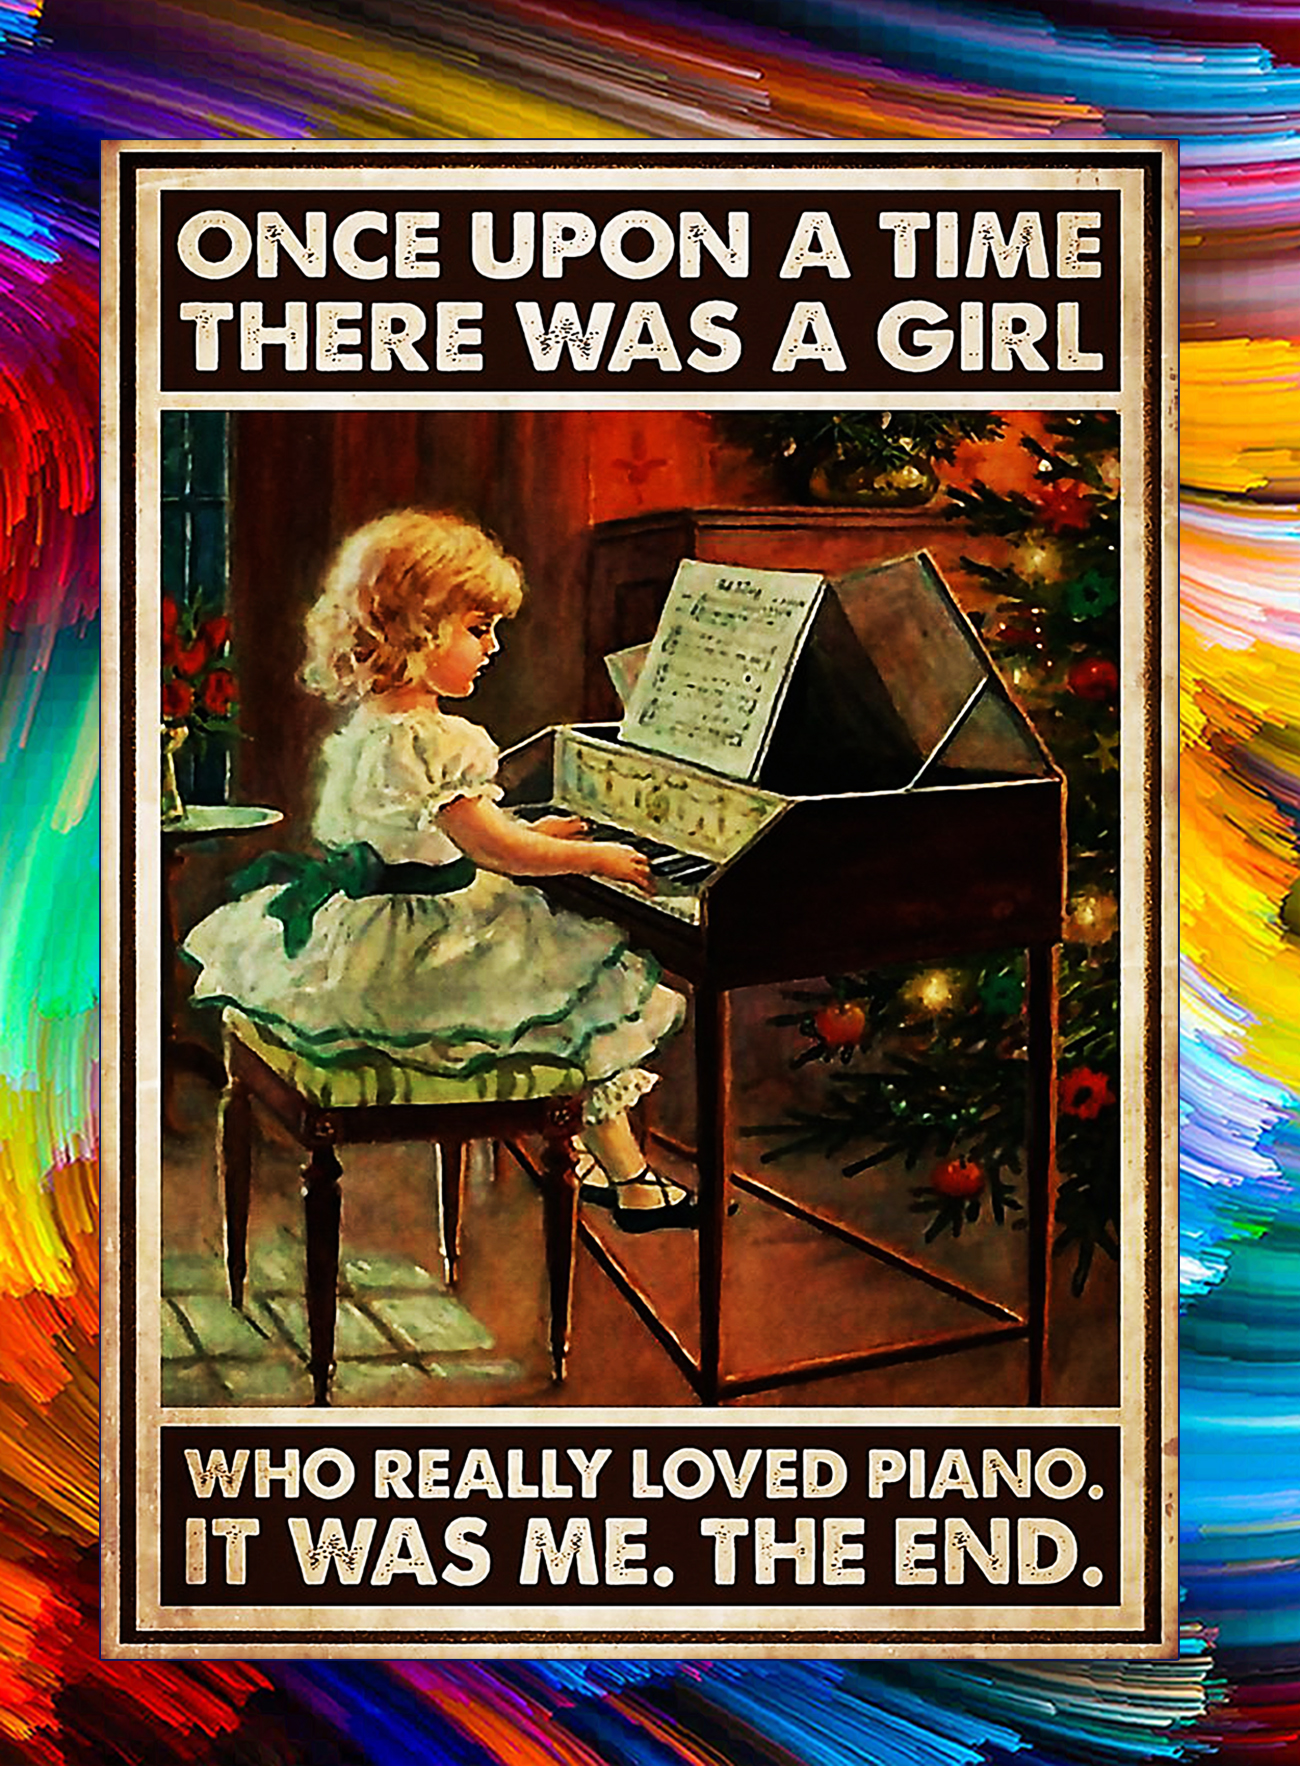 Once upon a time there was a girl who really loved piano poster - A1